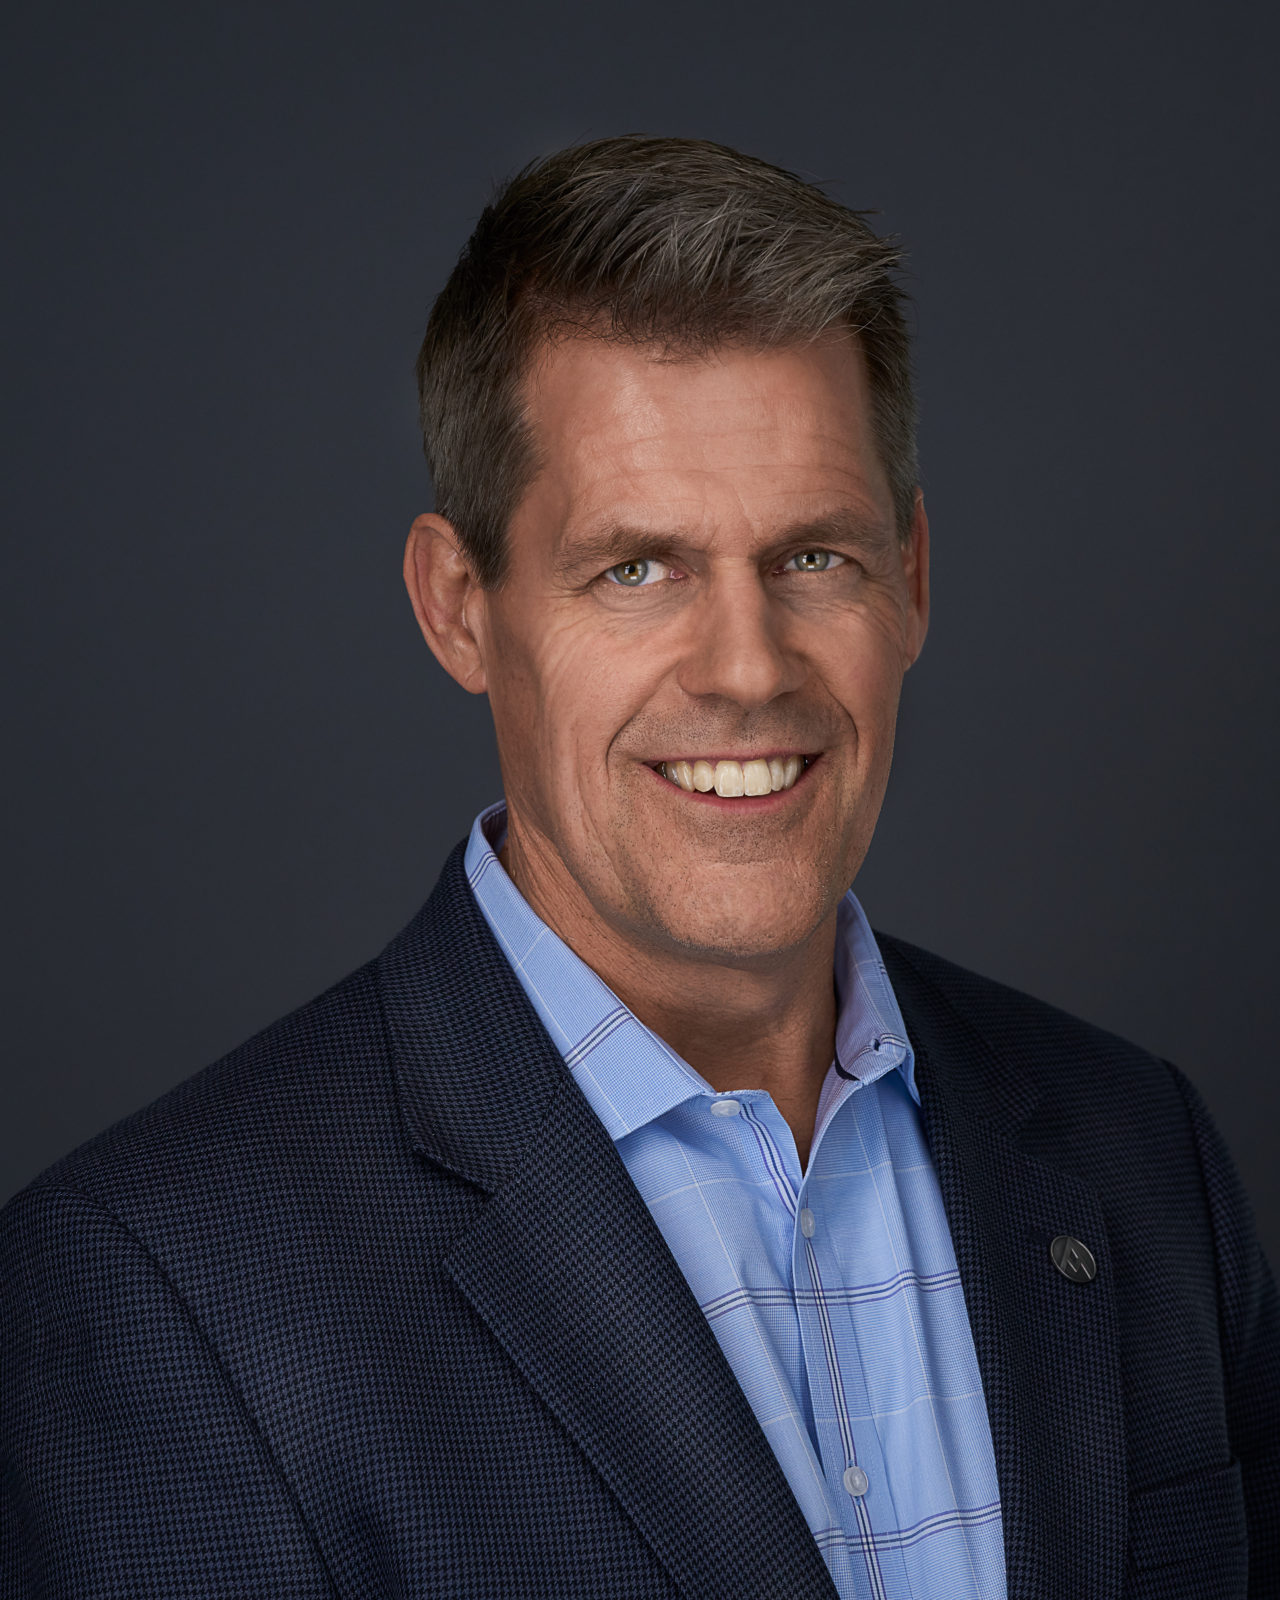 Ted Davies is the Chairman and CEO of Altamira Technologies Corporation